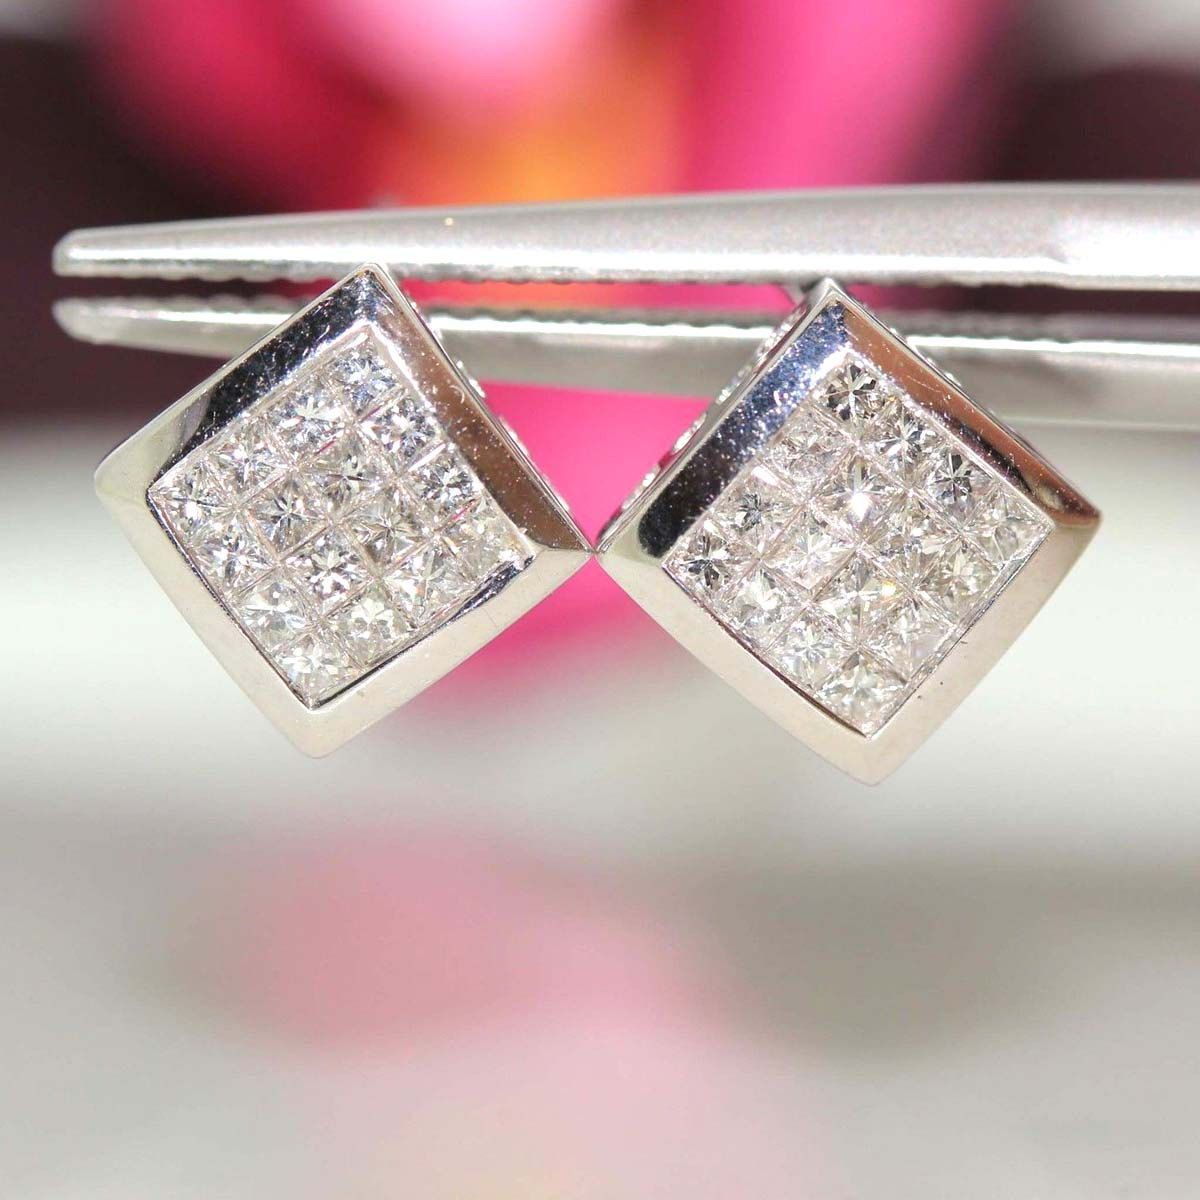 pin diamond simon hunter earrings available by cleef cascade for vintage ruby van at arpels estate taste teakle jewellery set of with and invisible a pair